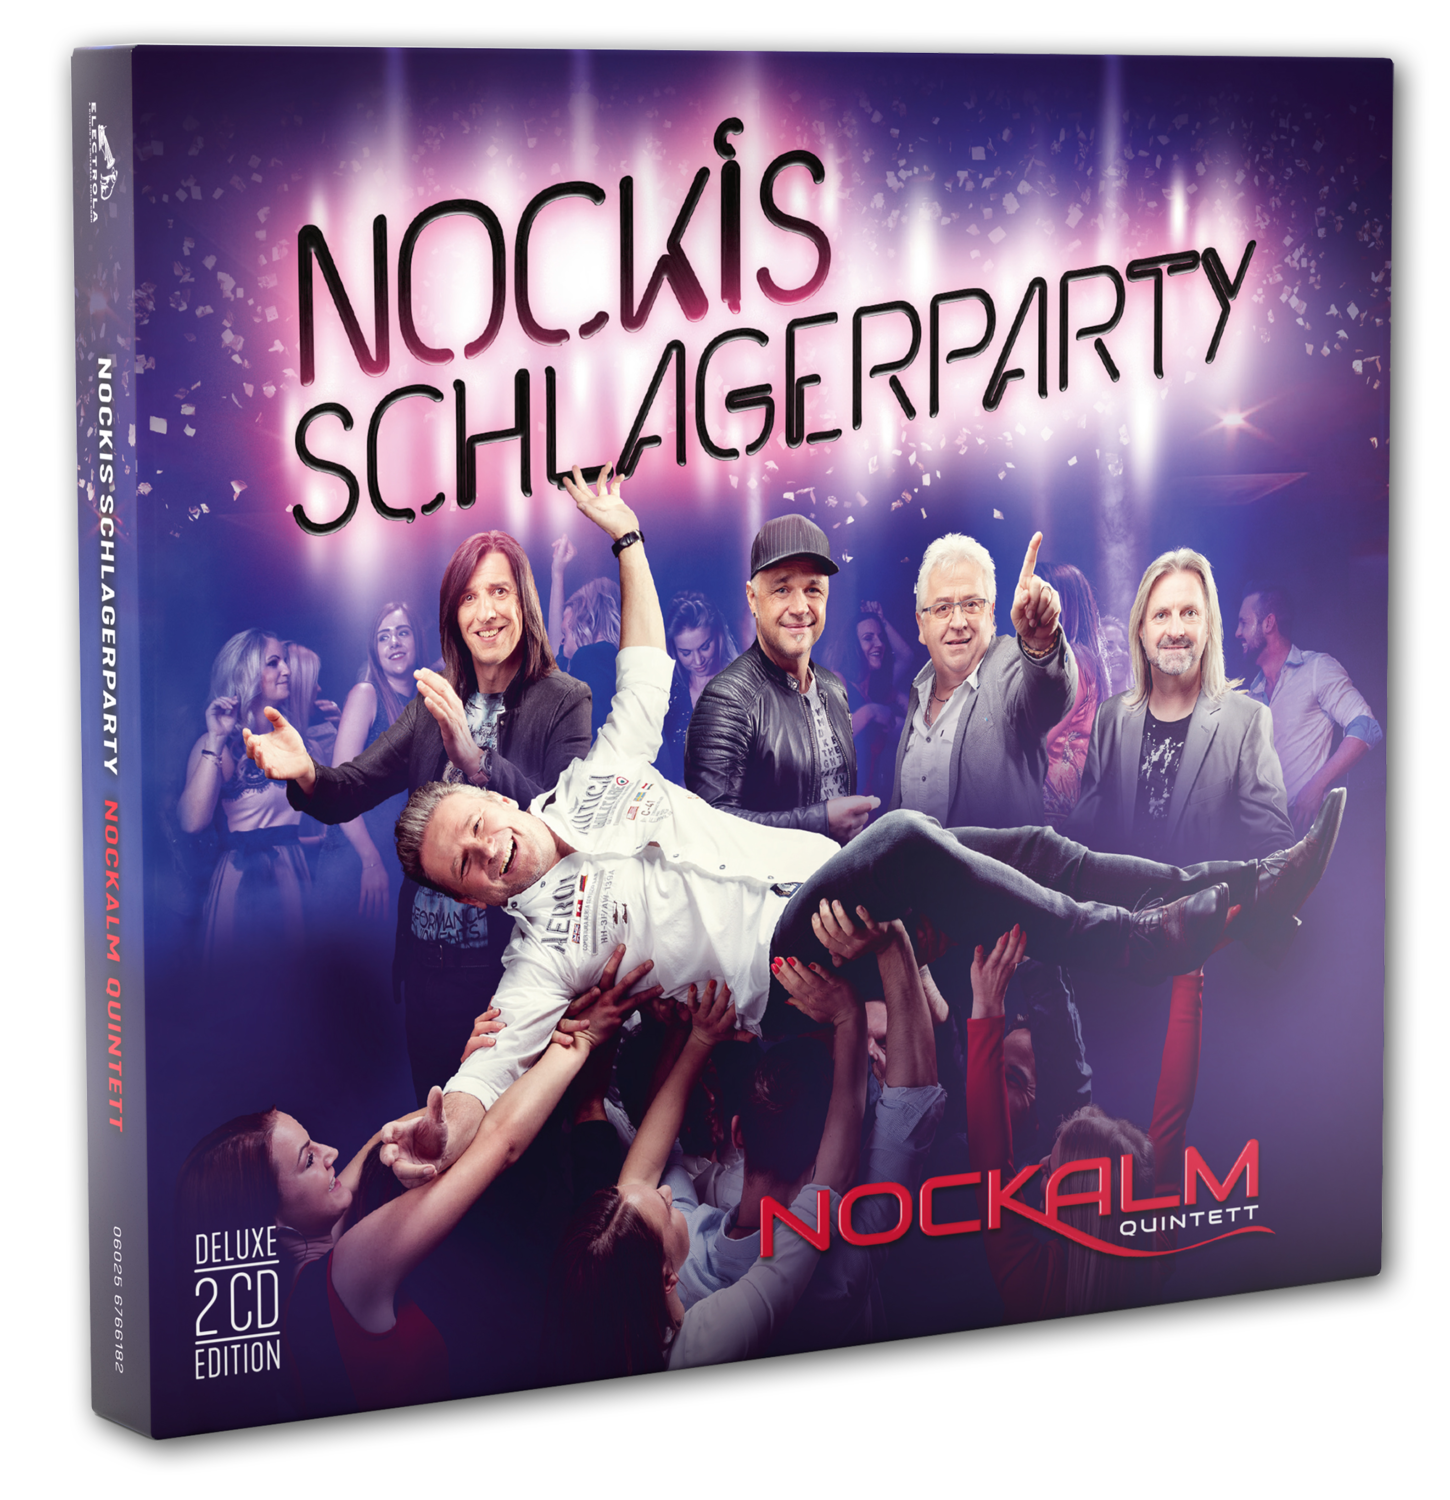 Nockis Schlagerparty (Deluxe-Edition)